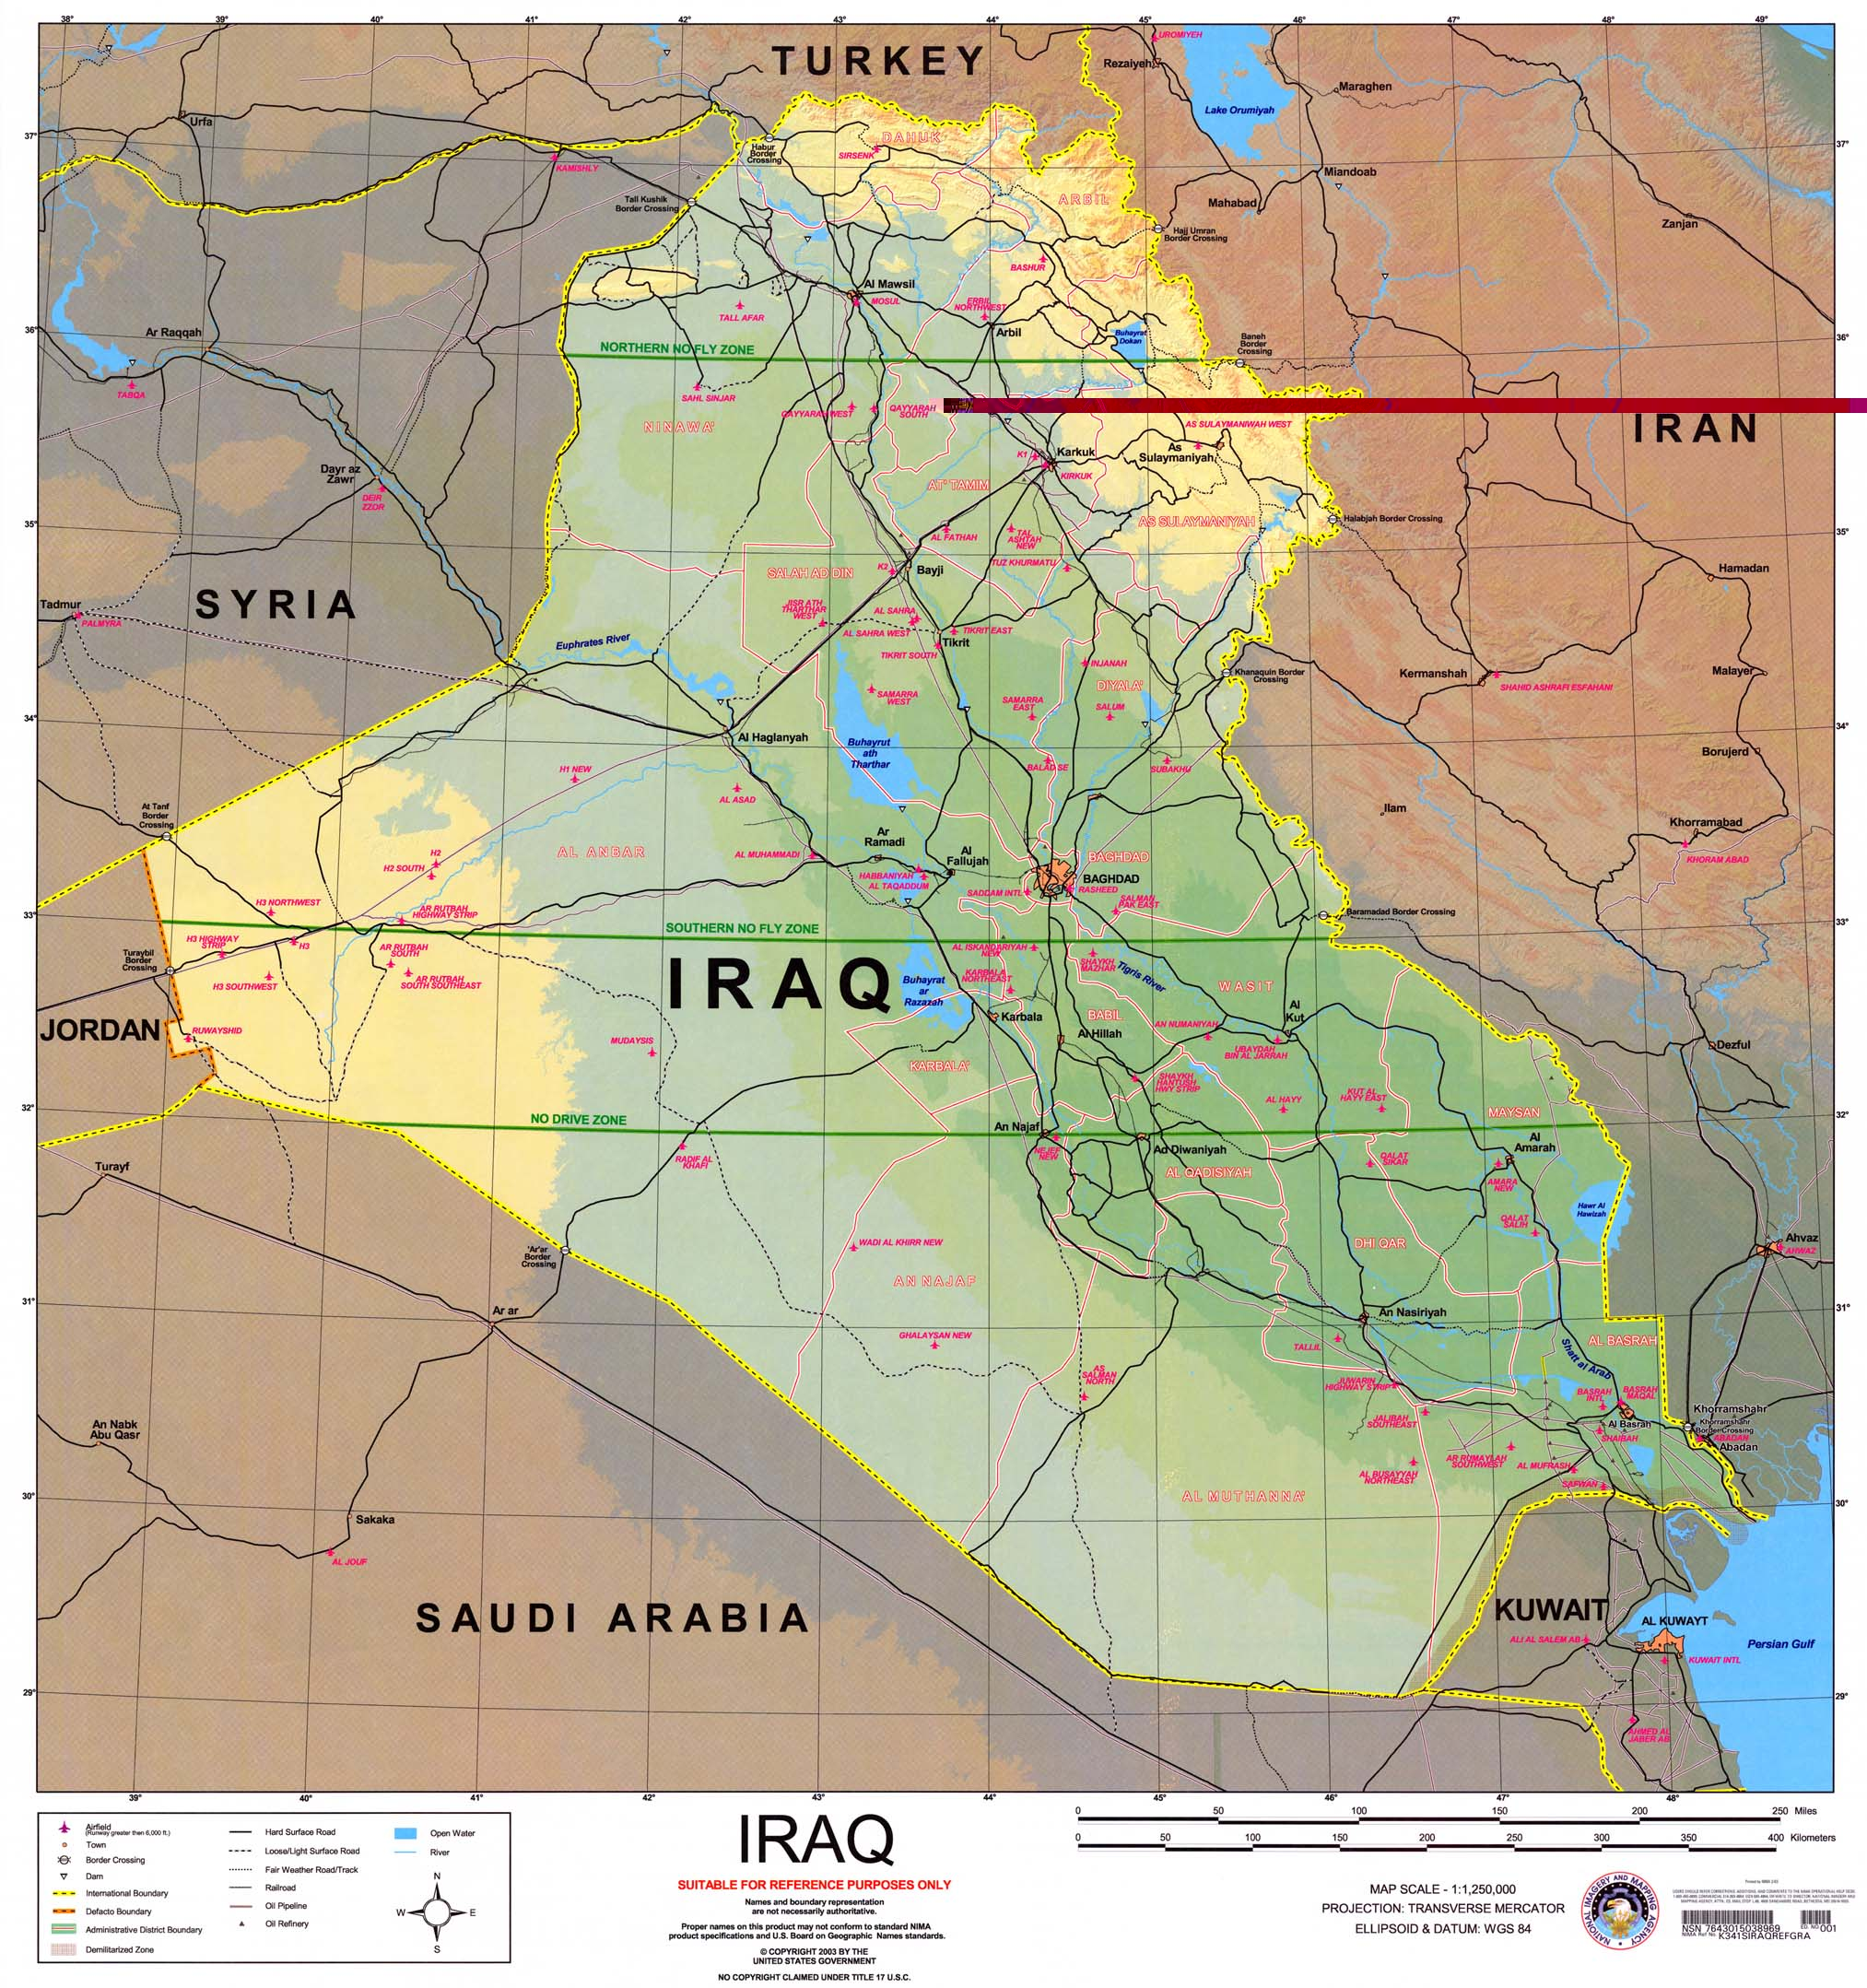 map of iraq with Mapa De Irak 2003 on Oman Geology likewise Serbia en additionally 2043068m additionally baghdad Airport additionally Kuwait.